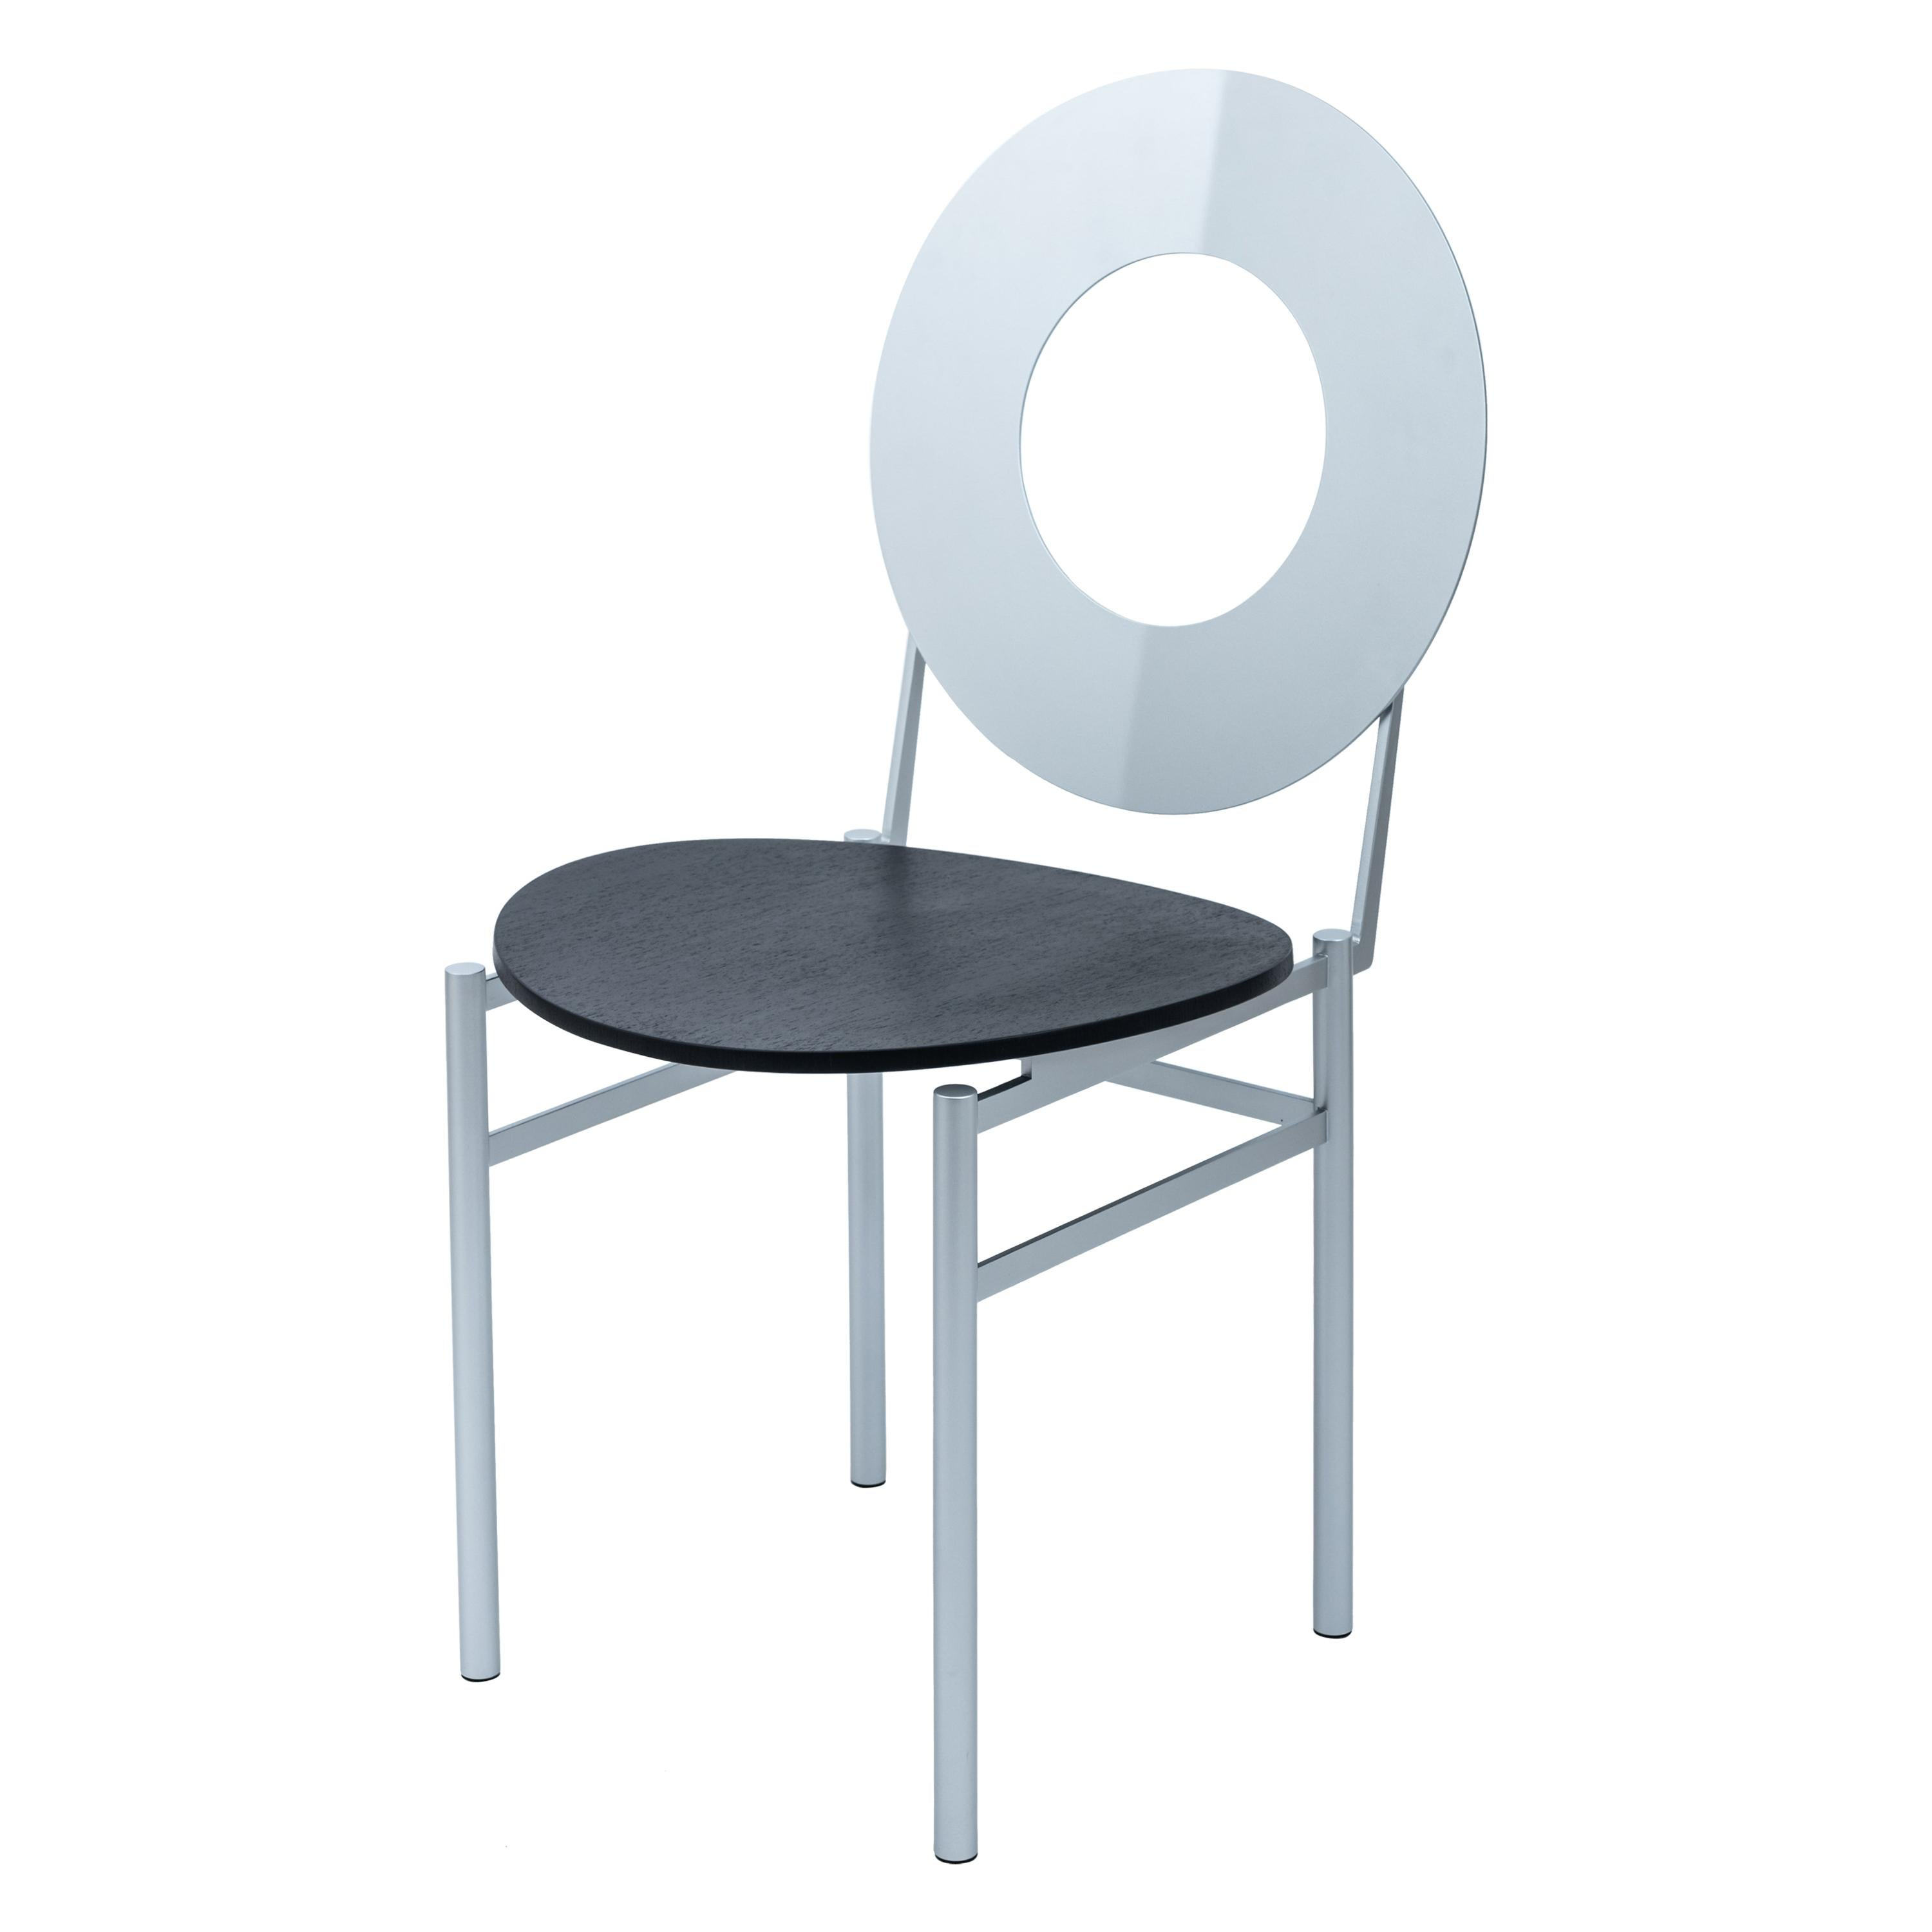 Eva Luxury Chair, Wooden Seat, Metal Structure and Back, Made in Italy